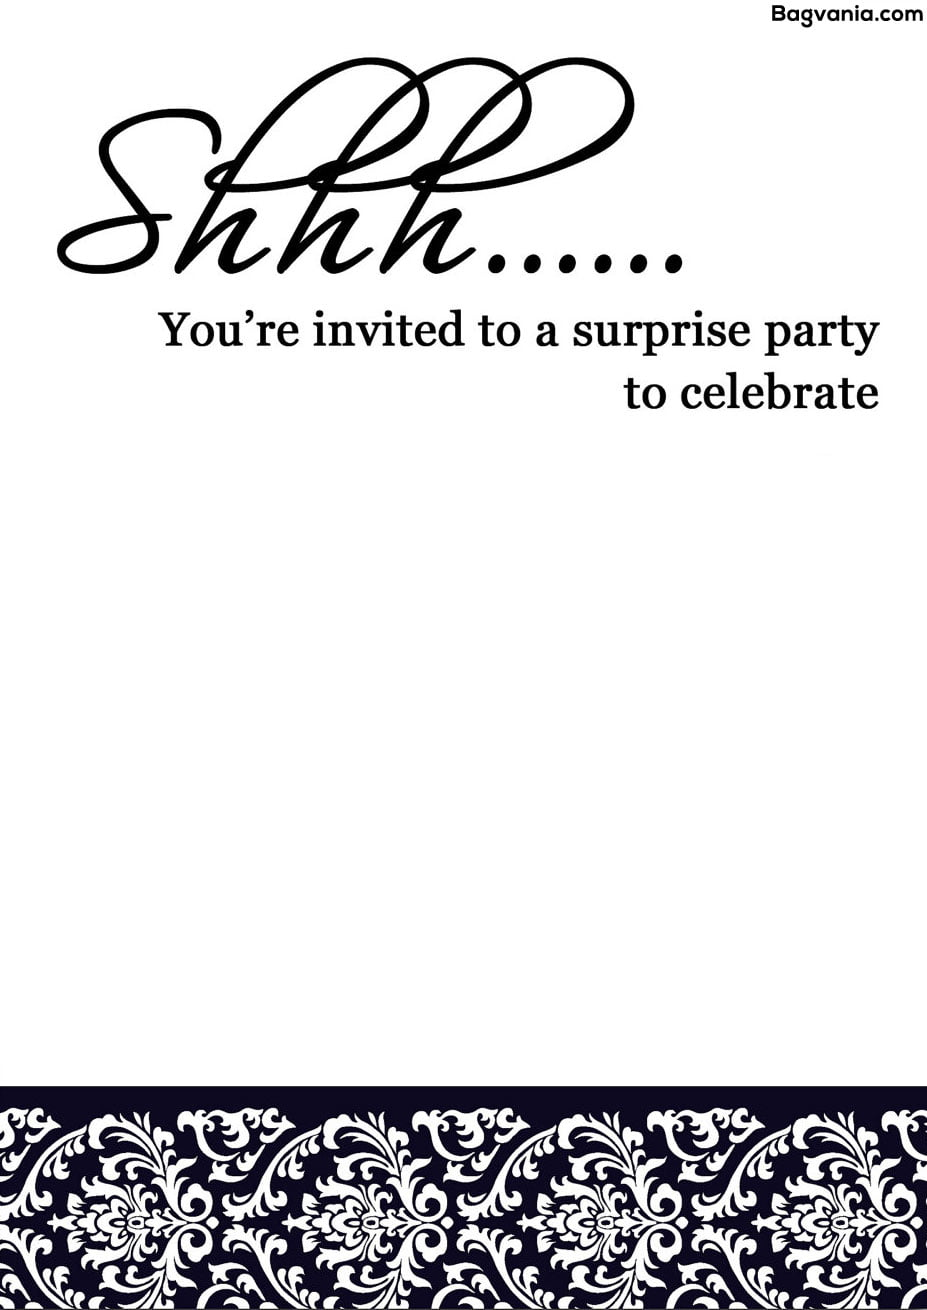 Free printable surprise birthday invitations bagvania free after giving the birthday invitations the next step is thinking about the decoration balloons would be amazing to be put on the room filmwisefo